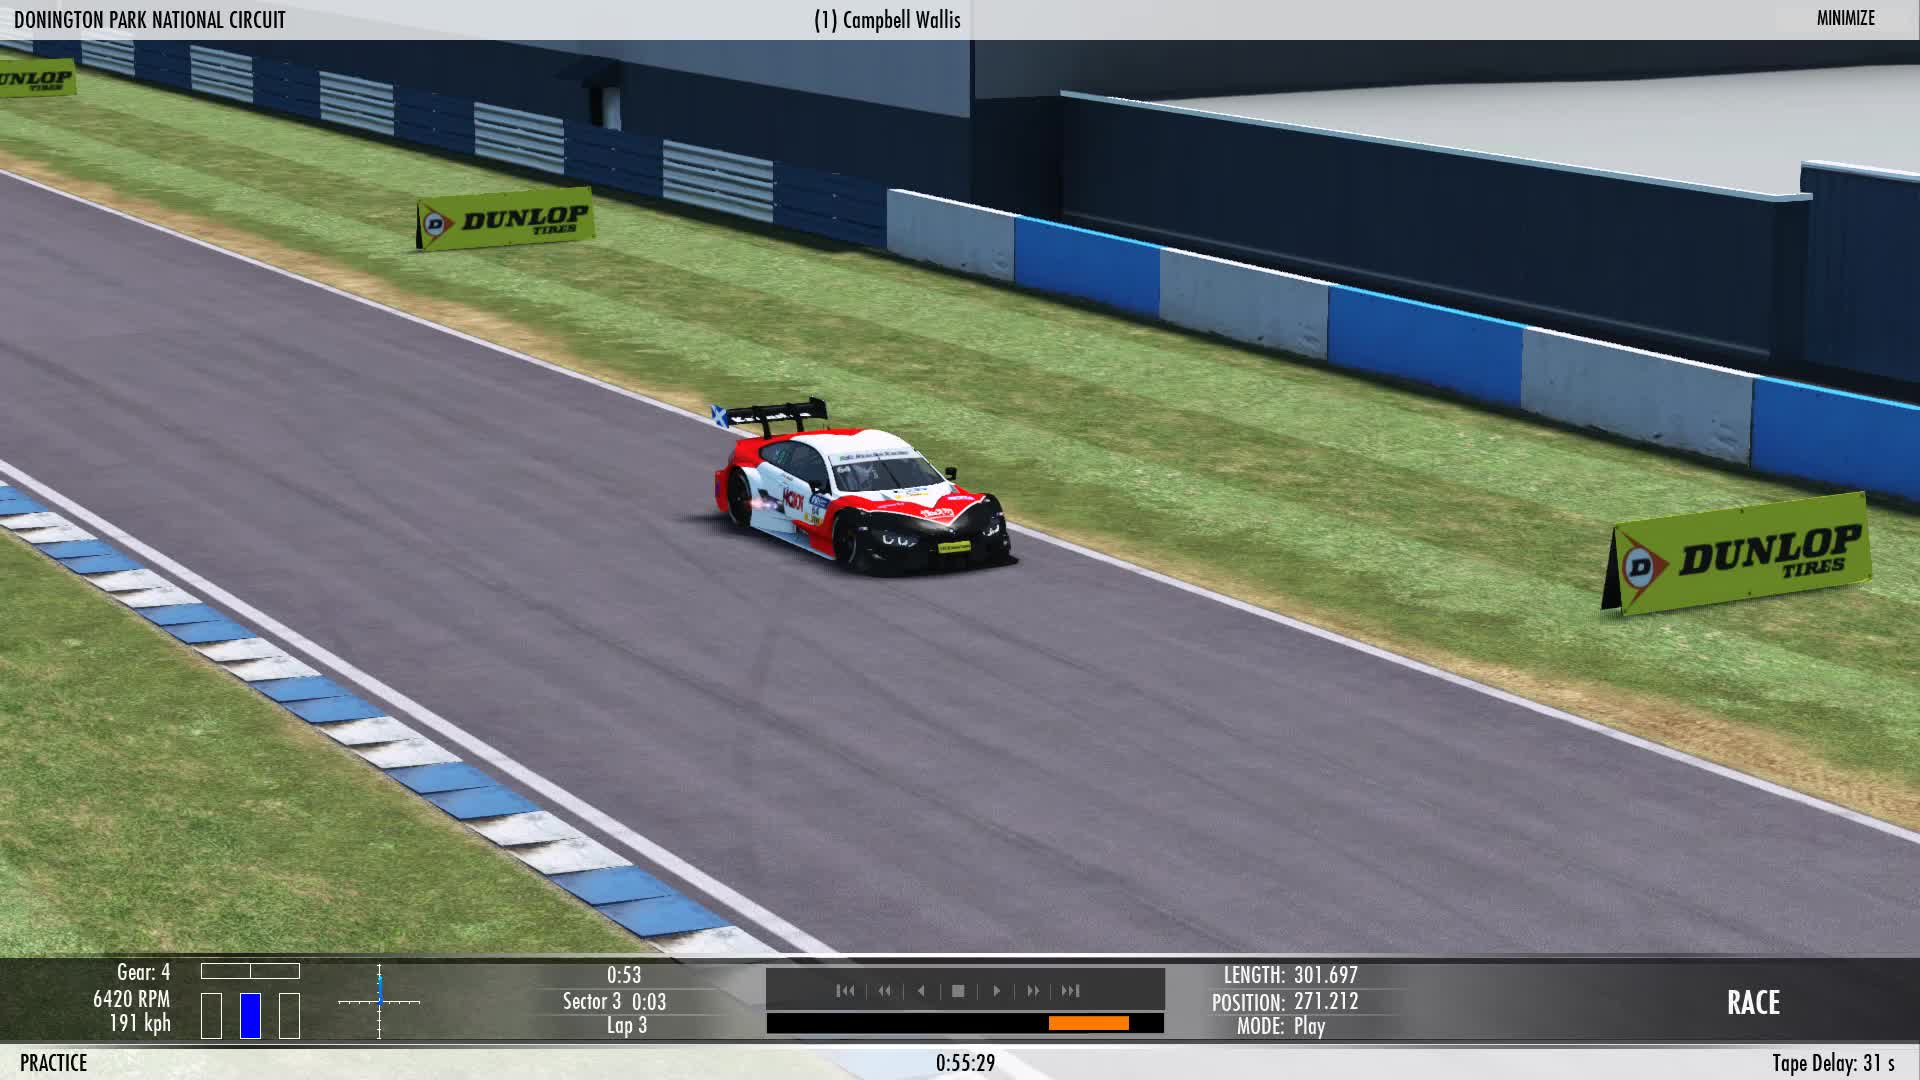 Rfactor 2 Gifs Search | Search & Share on Homdor